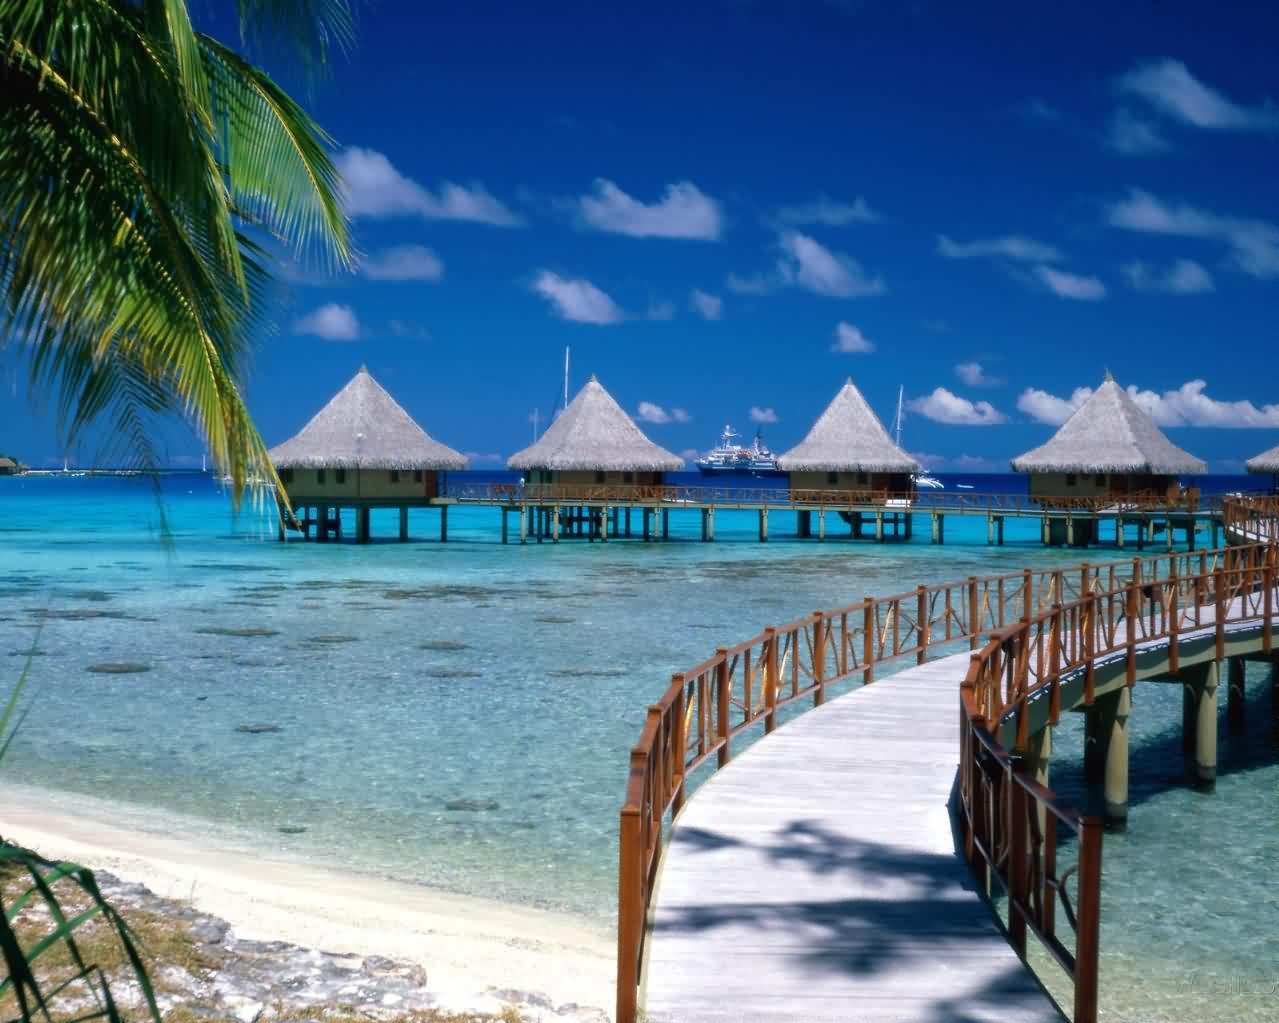 beach scenery background | scenery backgrounds